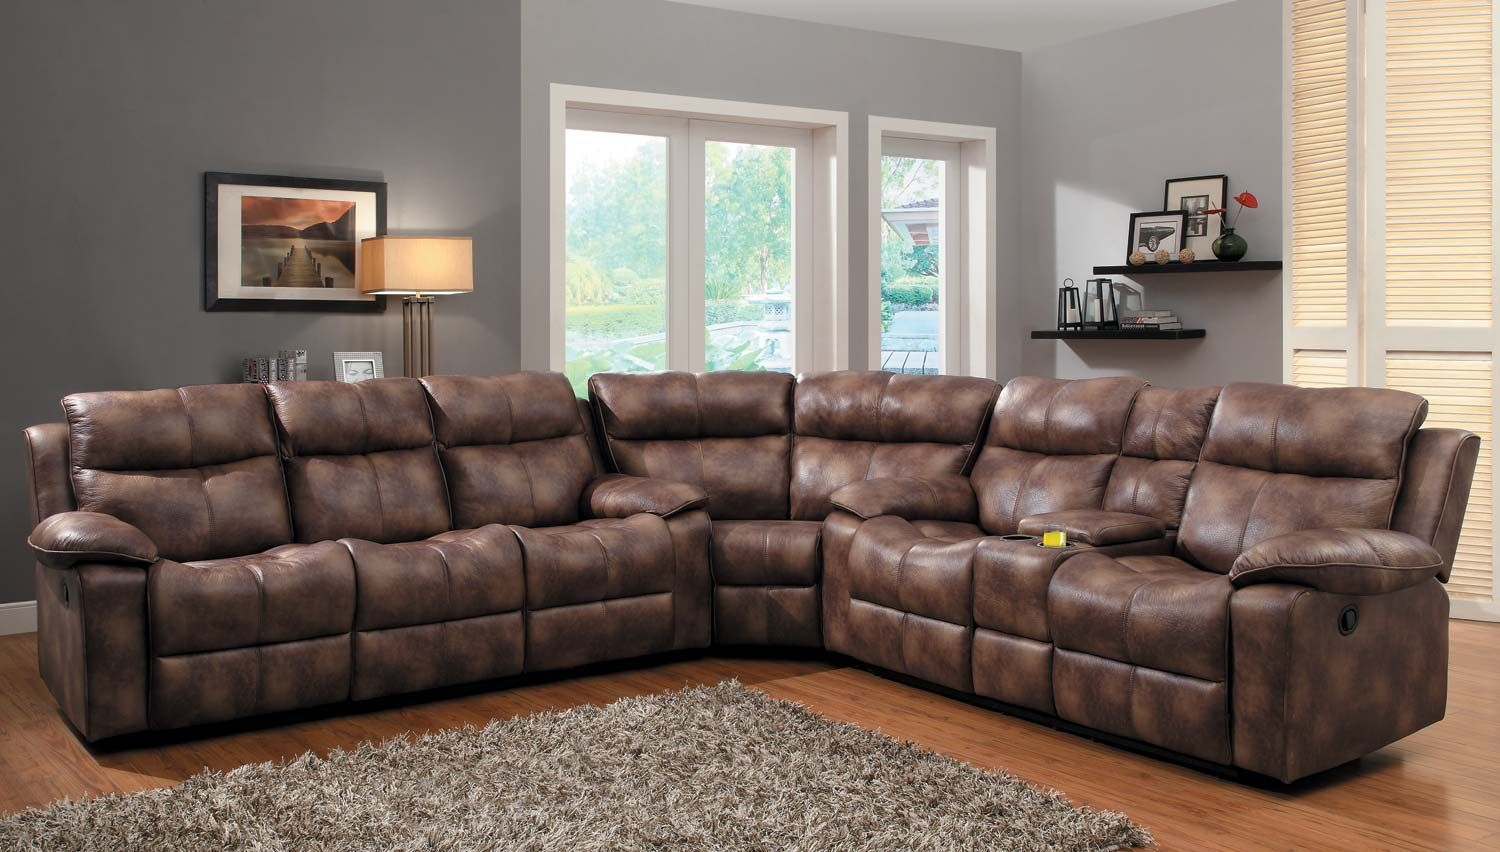 Awesome 3 Pc Brooklyn Heights Collection Polished Microfiber Upholstered Double Reclining  Sofa And Love Seat Sectional Set